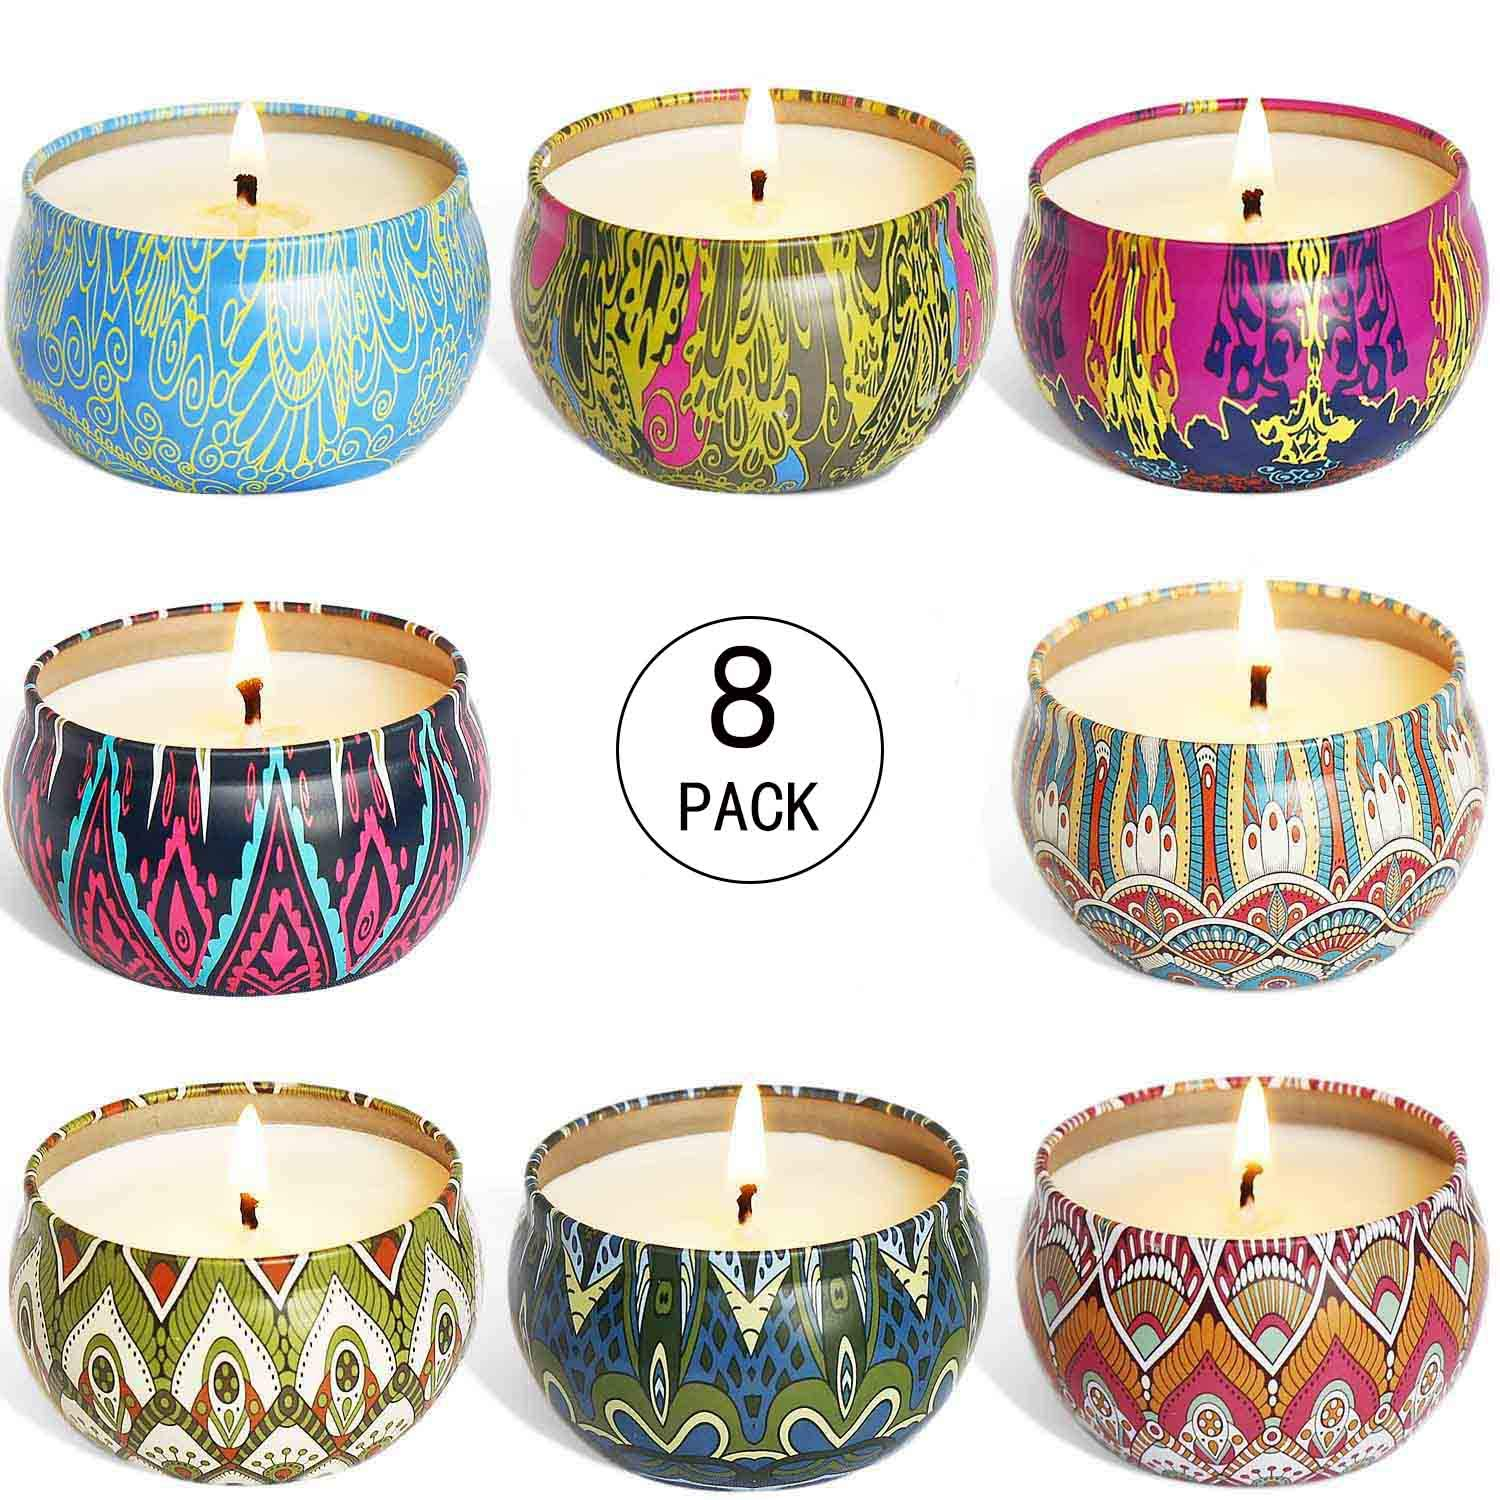 YIIA Fruity Scented Candles Gift Set, Natural Soy Wax Travel Tin Candle Stress Relief Aromatherapy with Sweet Odor 8-Pack(Lemon, Fig, Lavender, Spring Fresh,Rose ,Jasmine,Vanilla,Bergamot) by YIIA